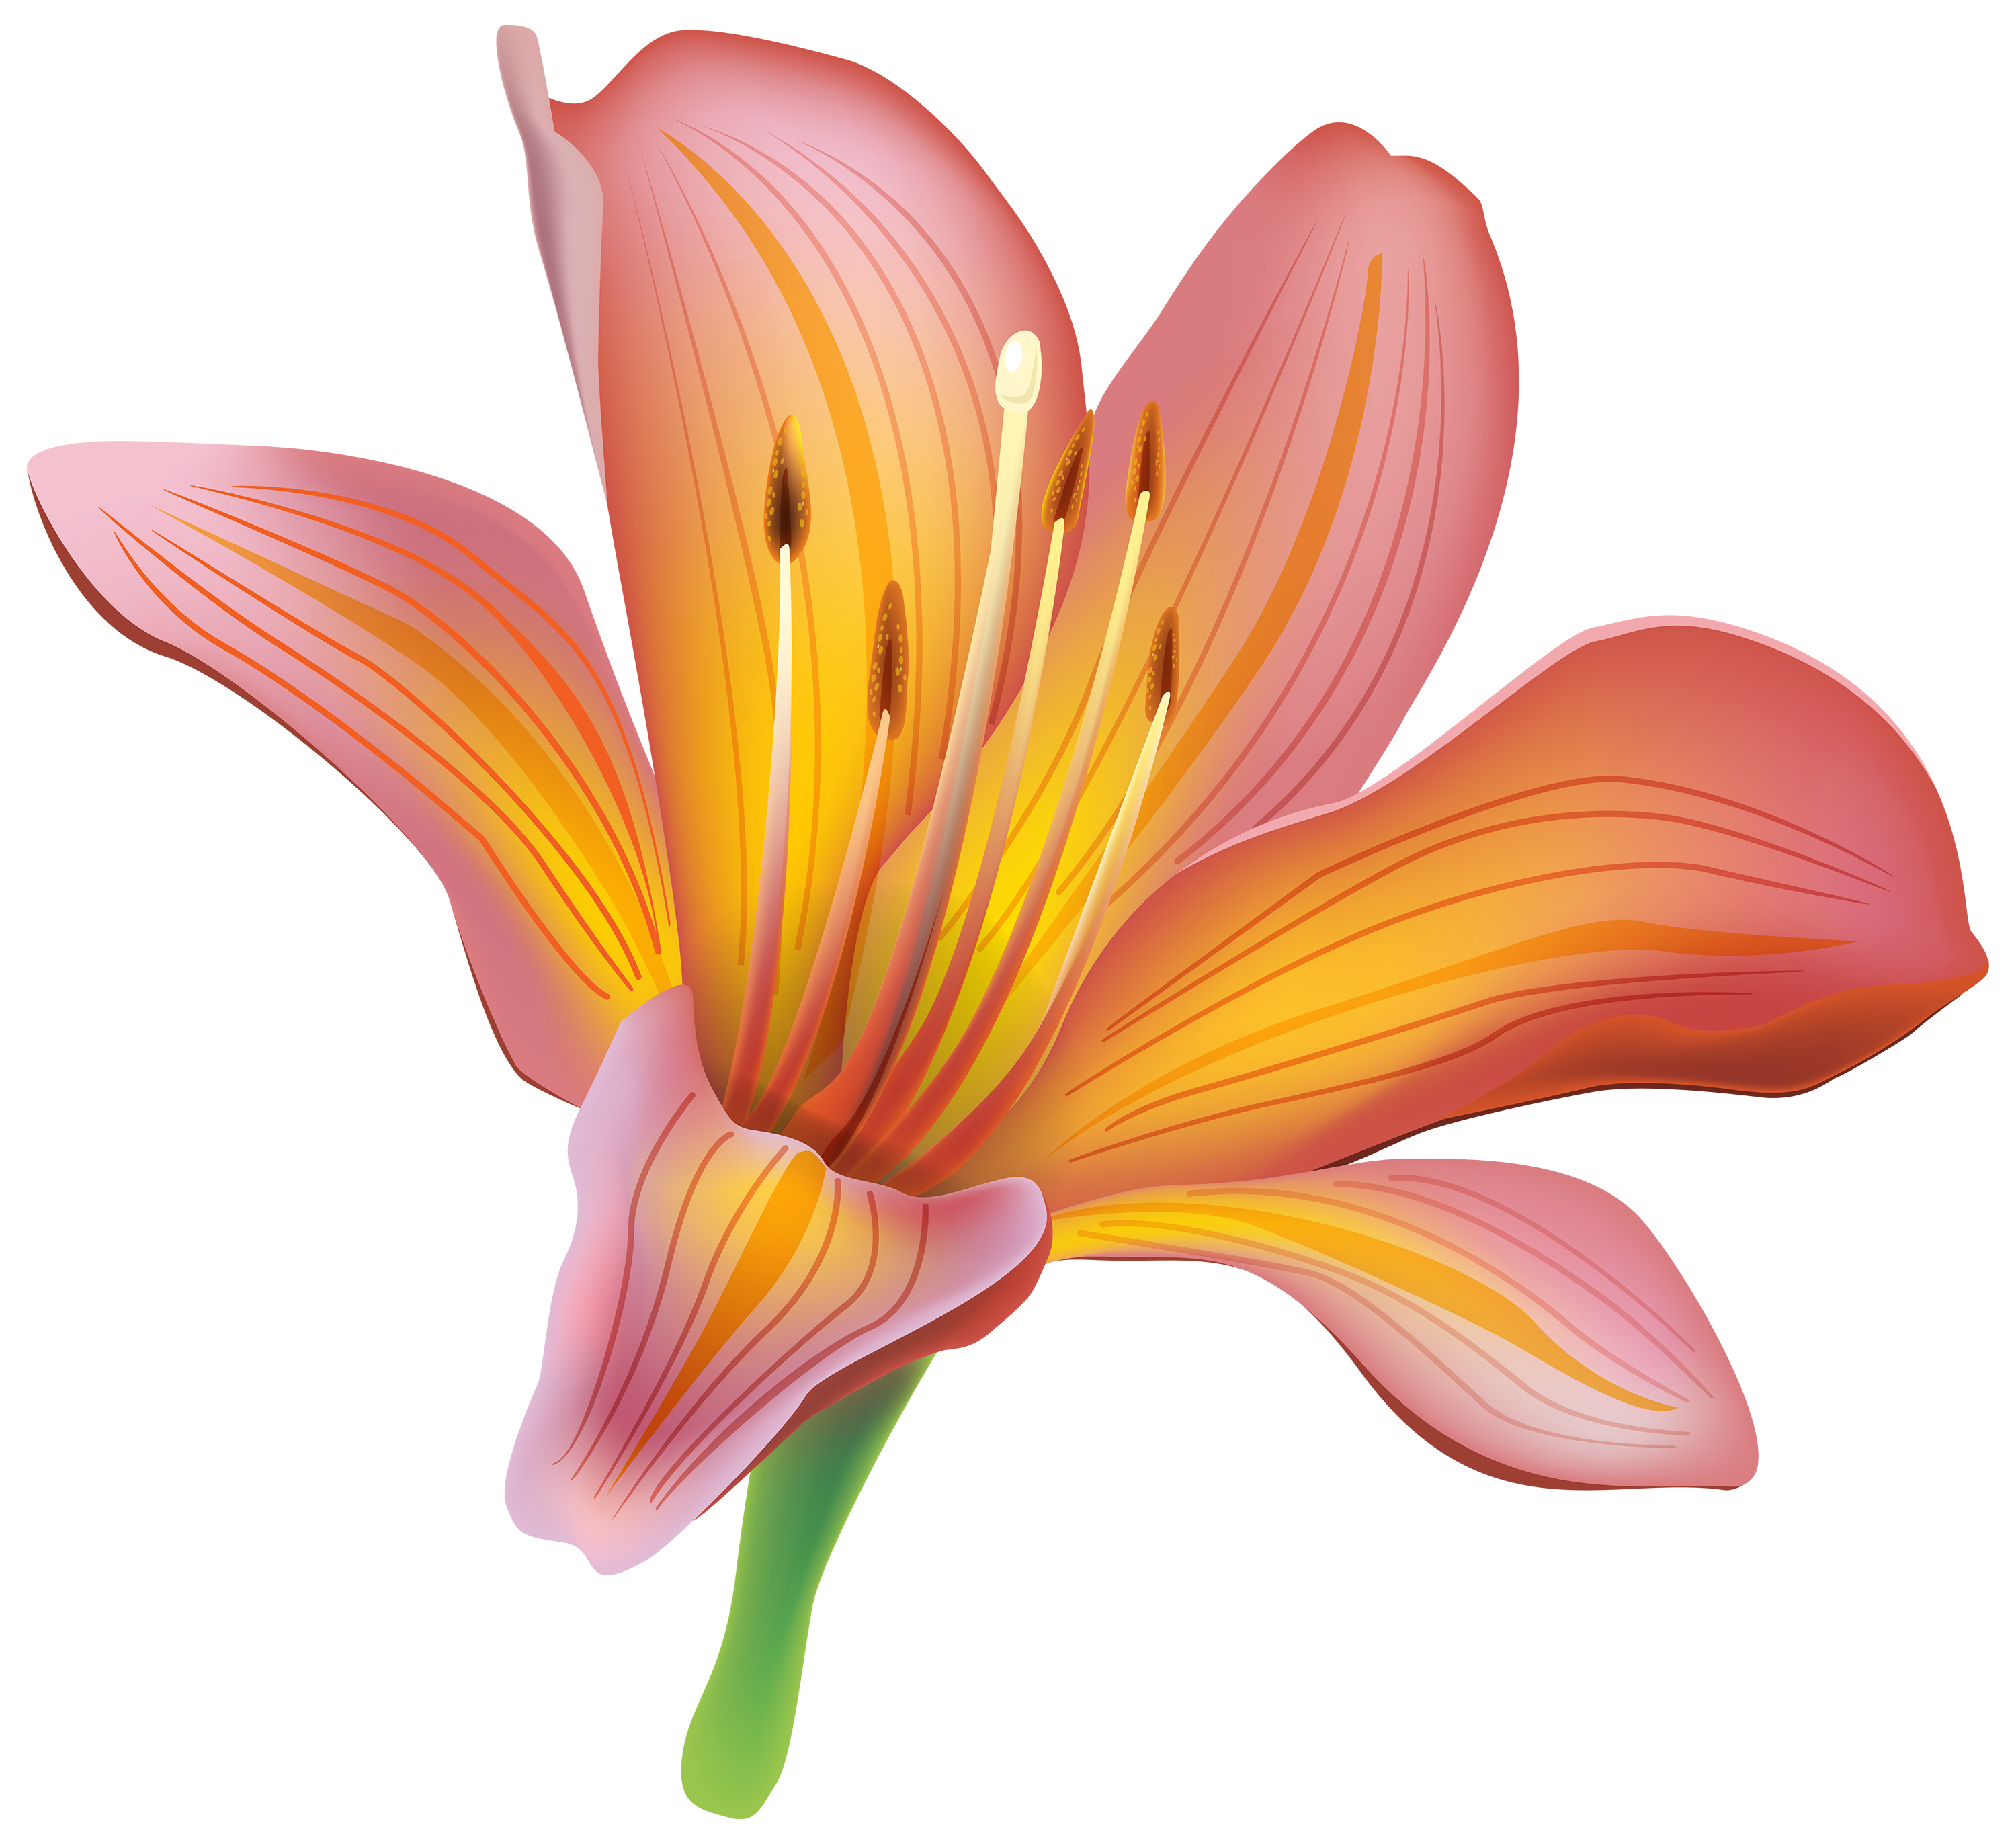 Lily flower png. Clipart best web